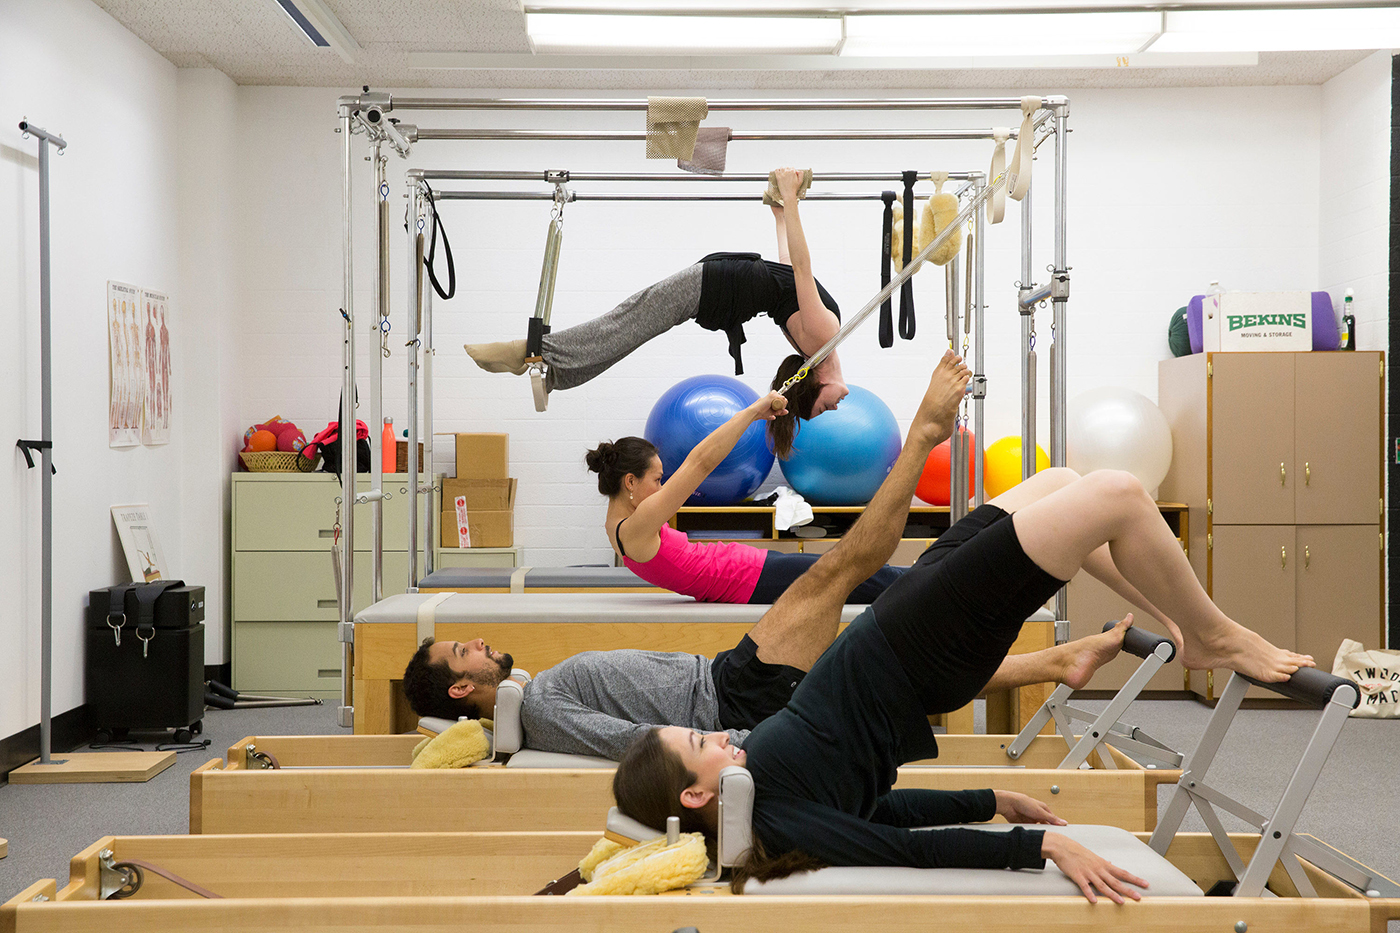 Pilates Studio/Site Specific Dance with Stephan Koplowitz